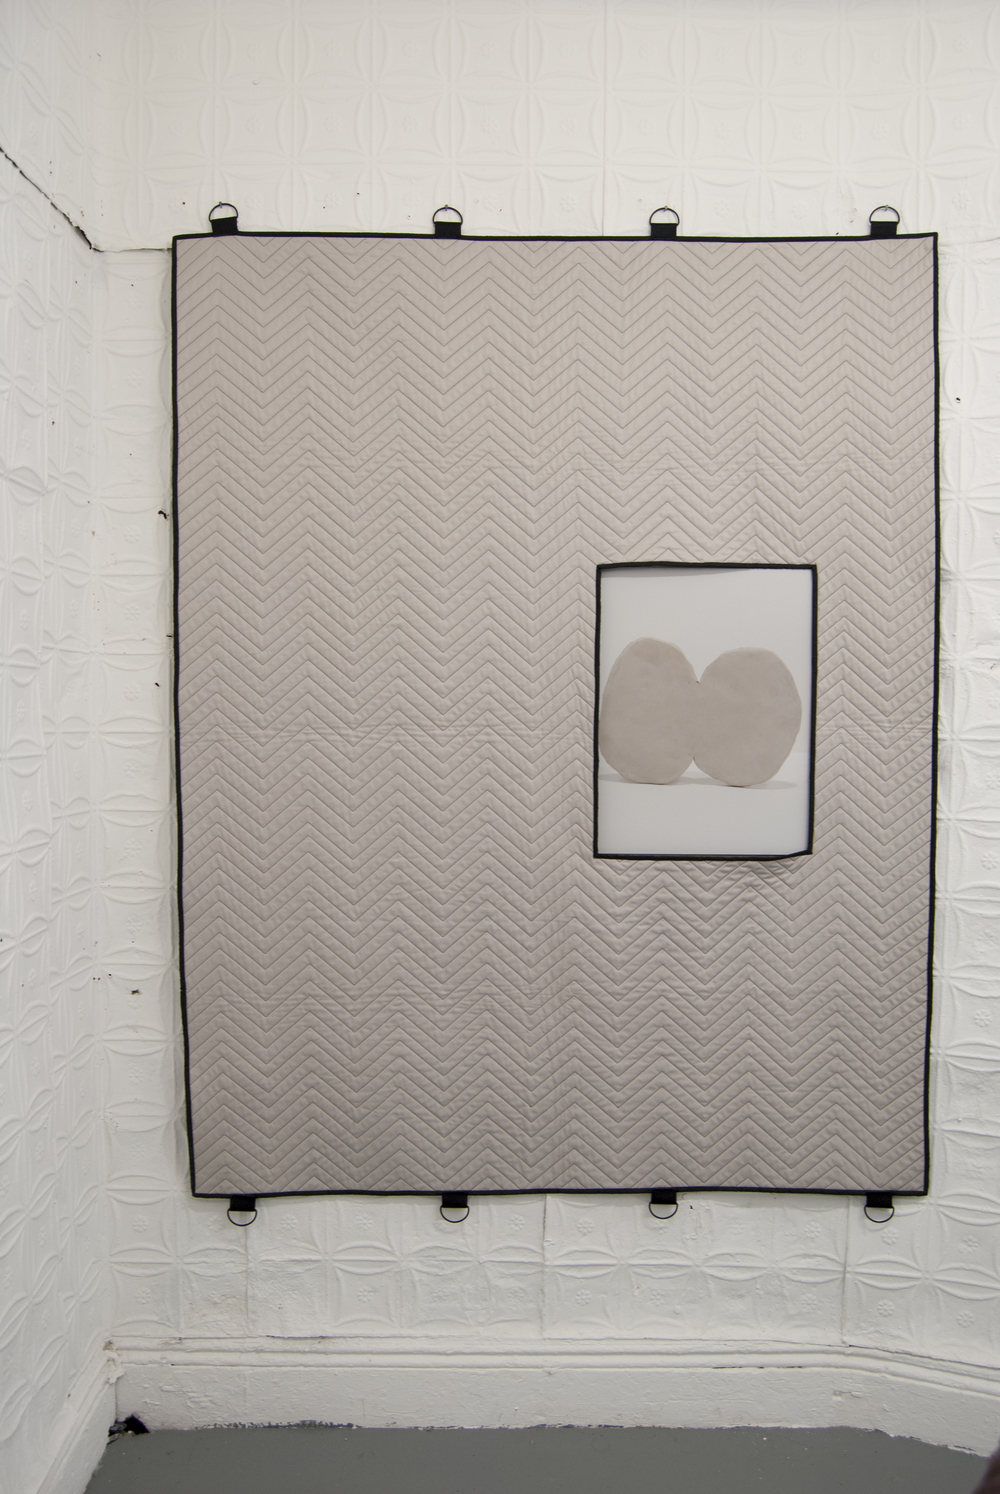 """Round About"" Collaborative with Christalena Hughmanick 2014  fabricated moving blanket, archival pigment print 56""x 73"""